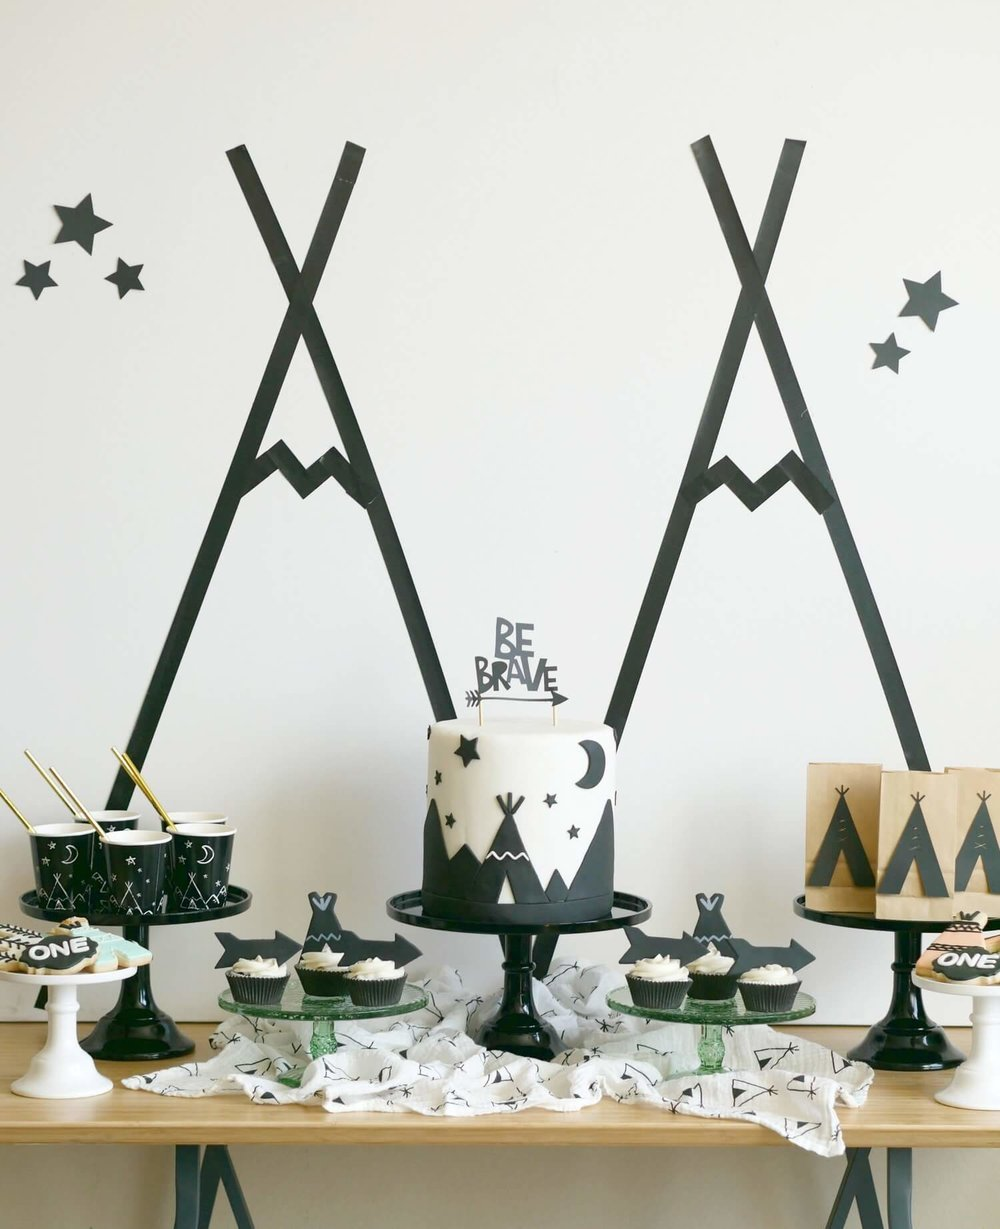 Tribal First birthday party idea / Be Brave party ideas and decor / Modern Camping party ideas / Tribal Dessert table / Be Brave dessert table / Styled by Carolina from MINT Event Design / www.minteventdesign.com